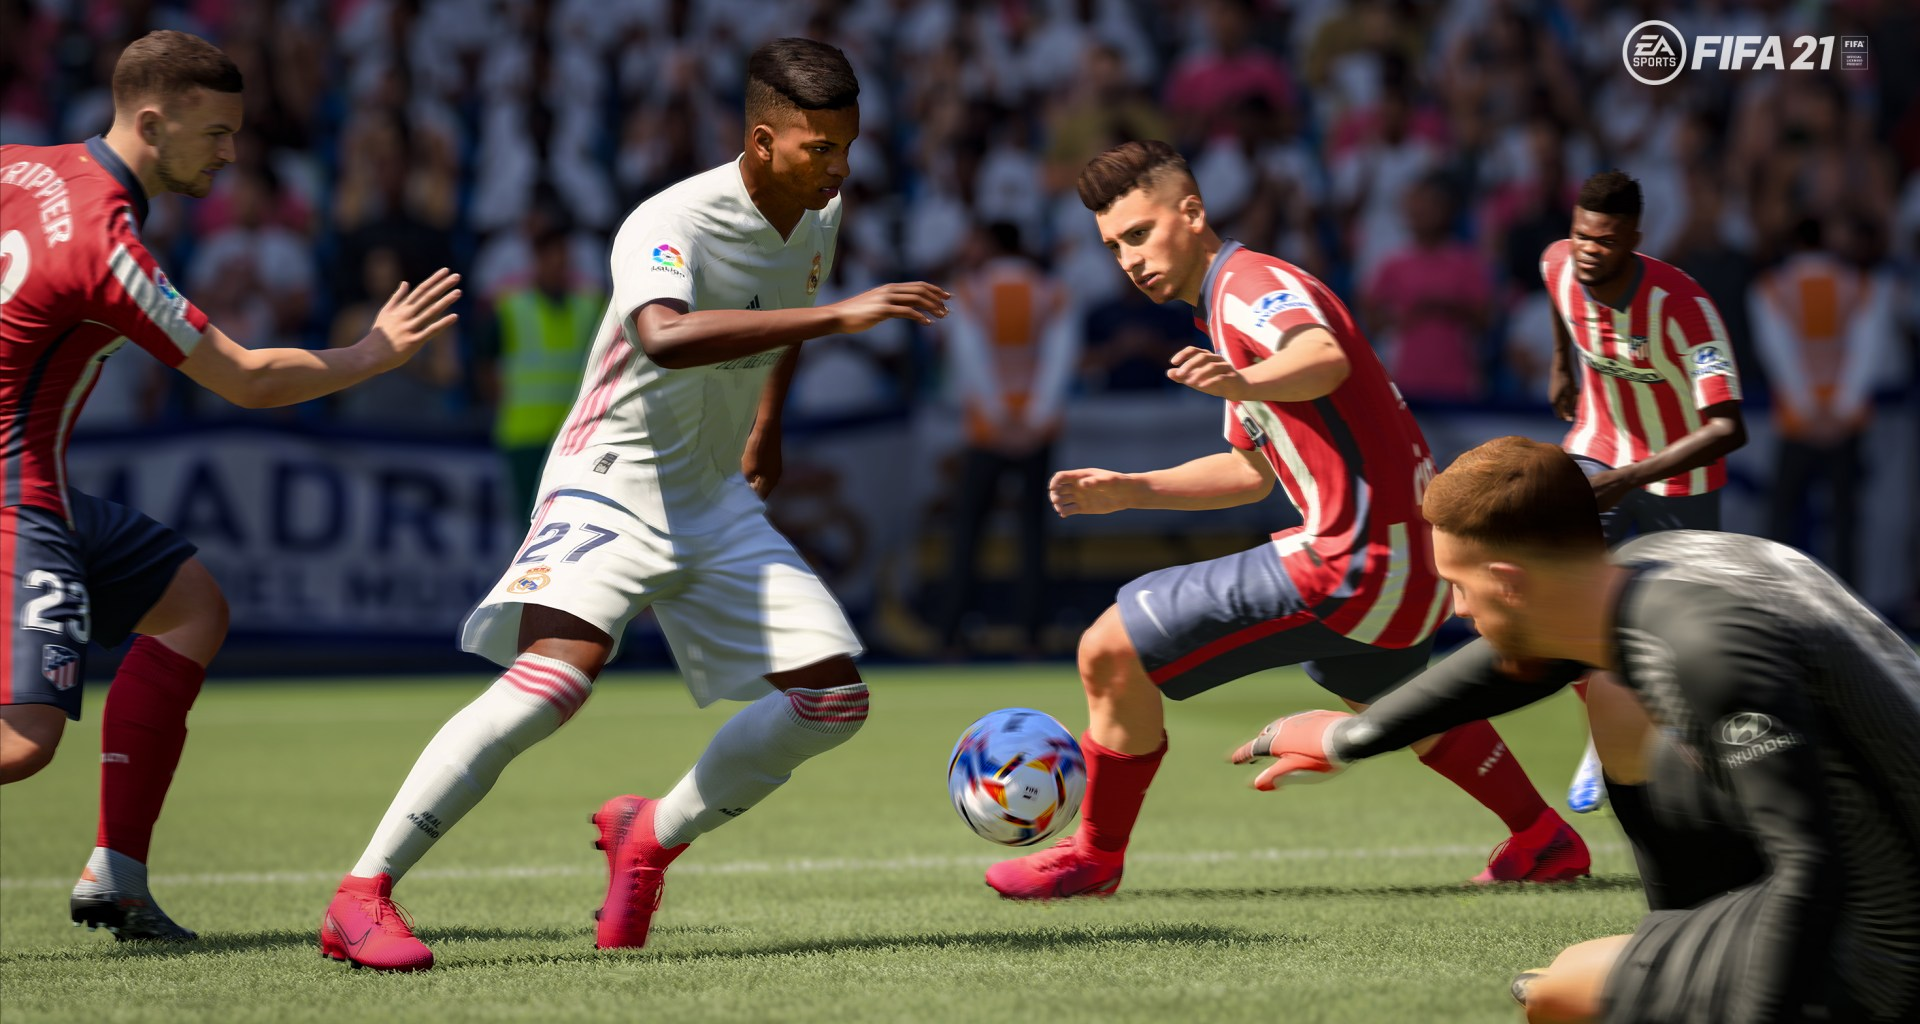 3716603 rodrygo cleaner outcomes lores wm 16x9 - FIFA 21 MOD APK AND OBB DATA FILES (WORKS OFFLINE)